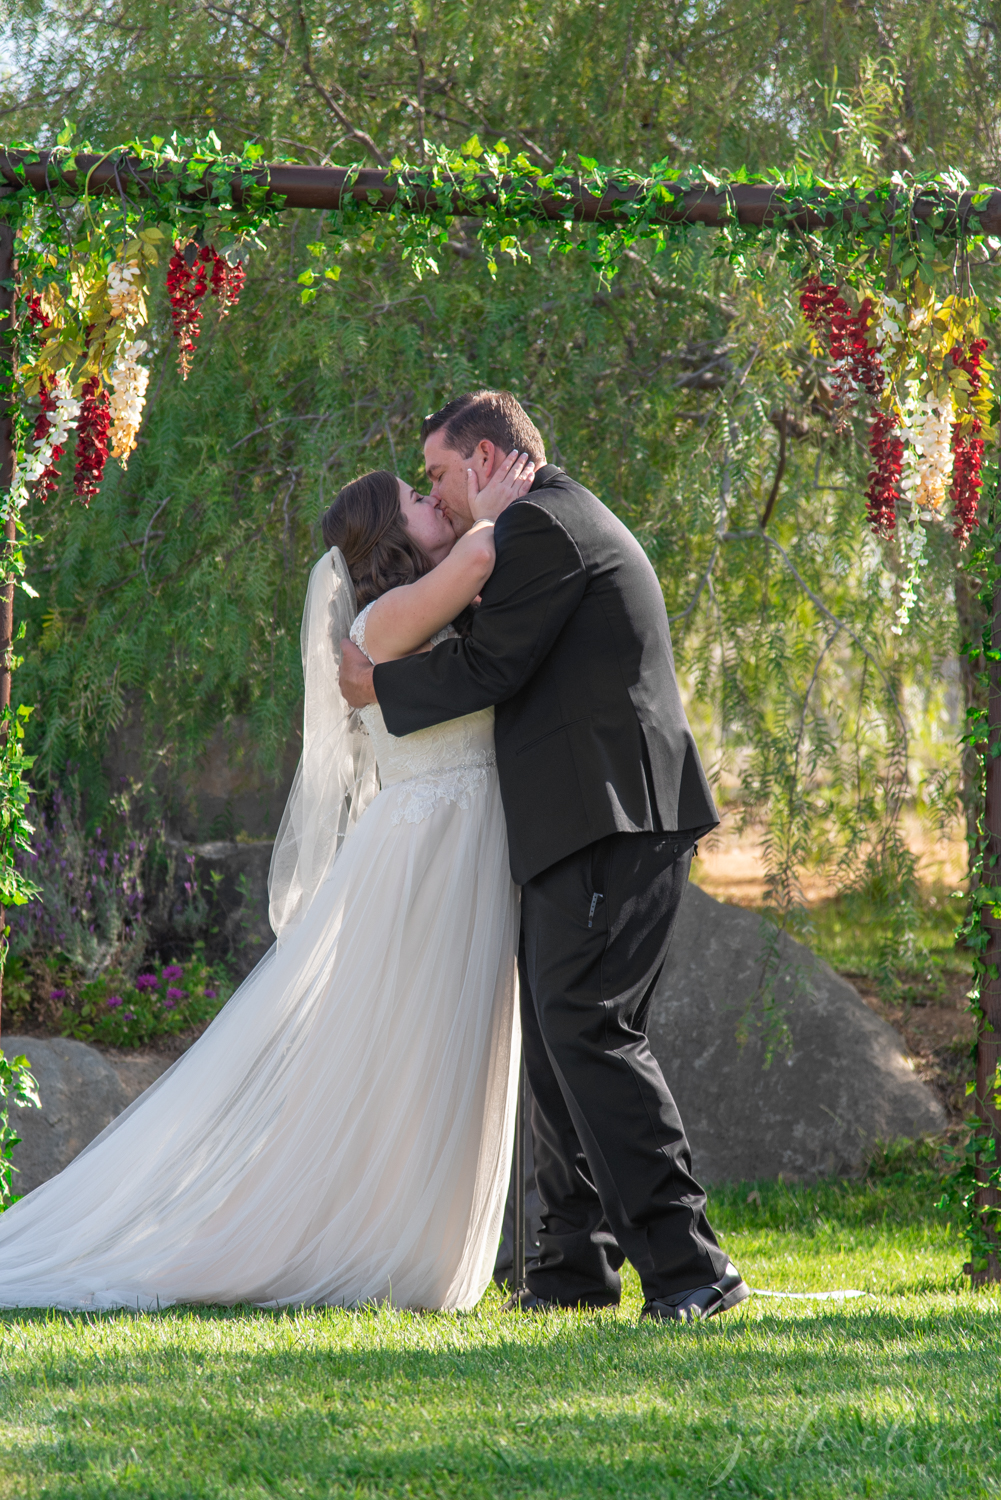 Glendale-Wedding-Photographer-Blog-Jade-Elora-067-2.jpg